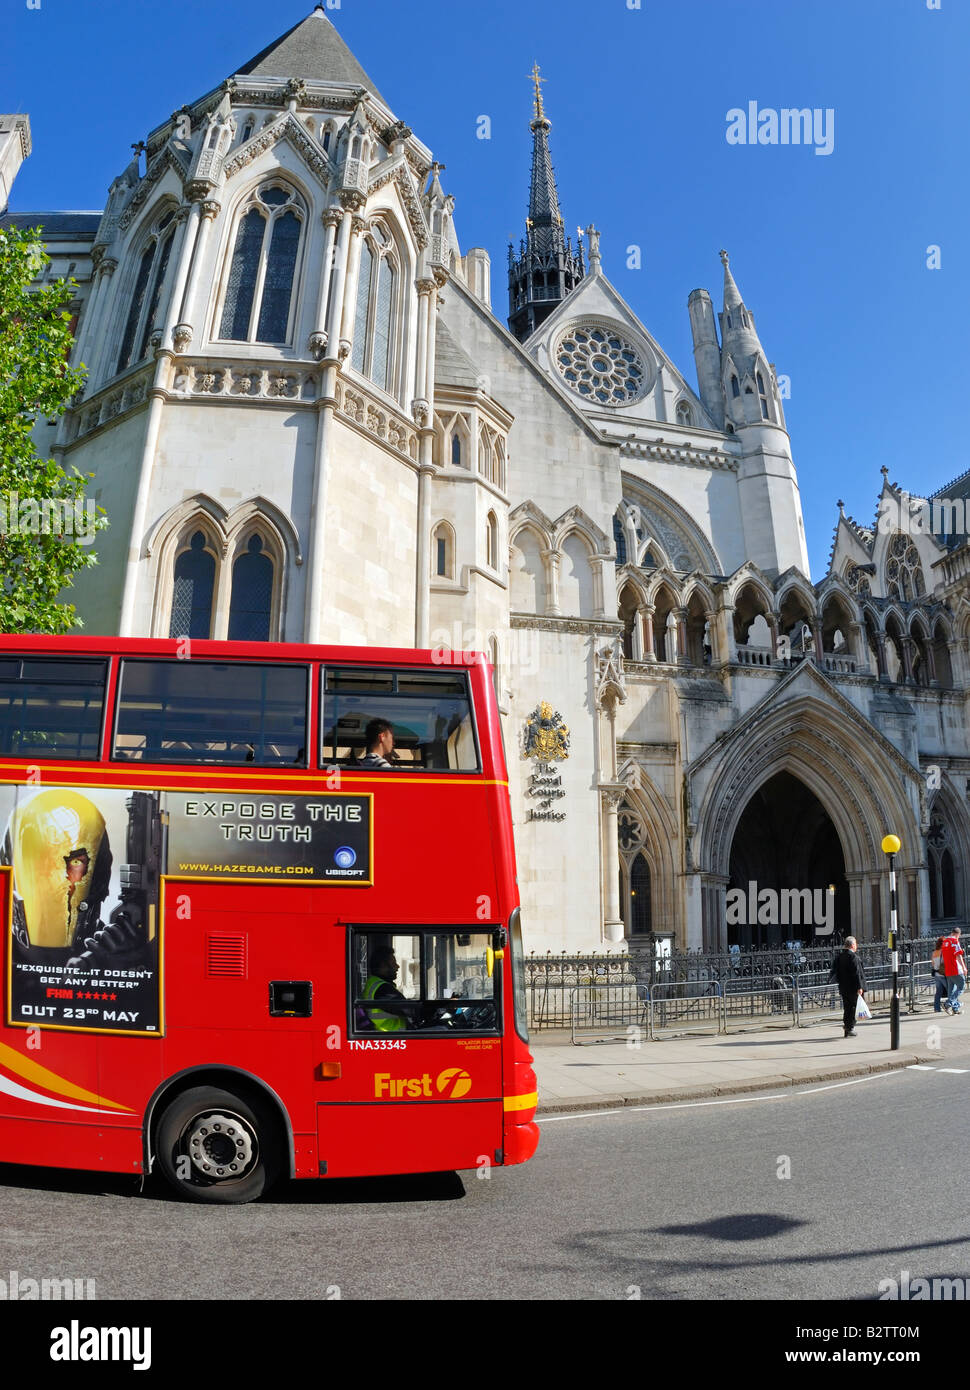 Royal Courts of Justice, London - Stock Image